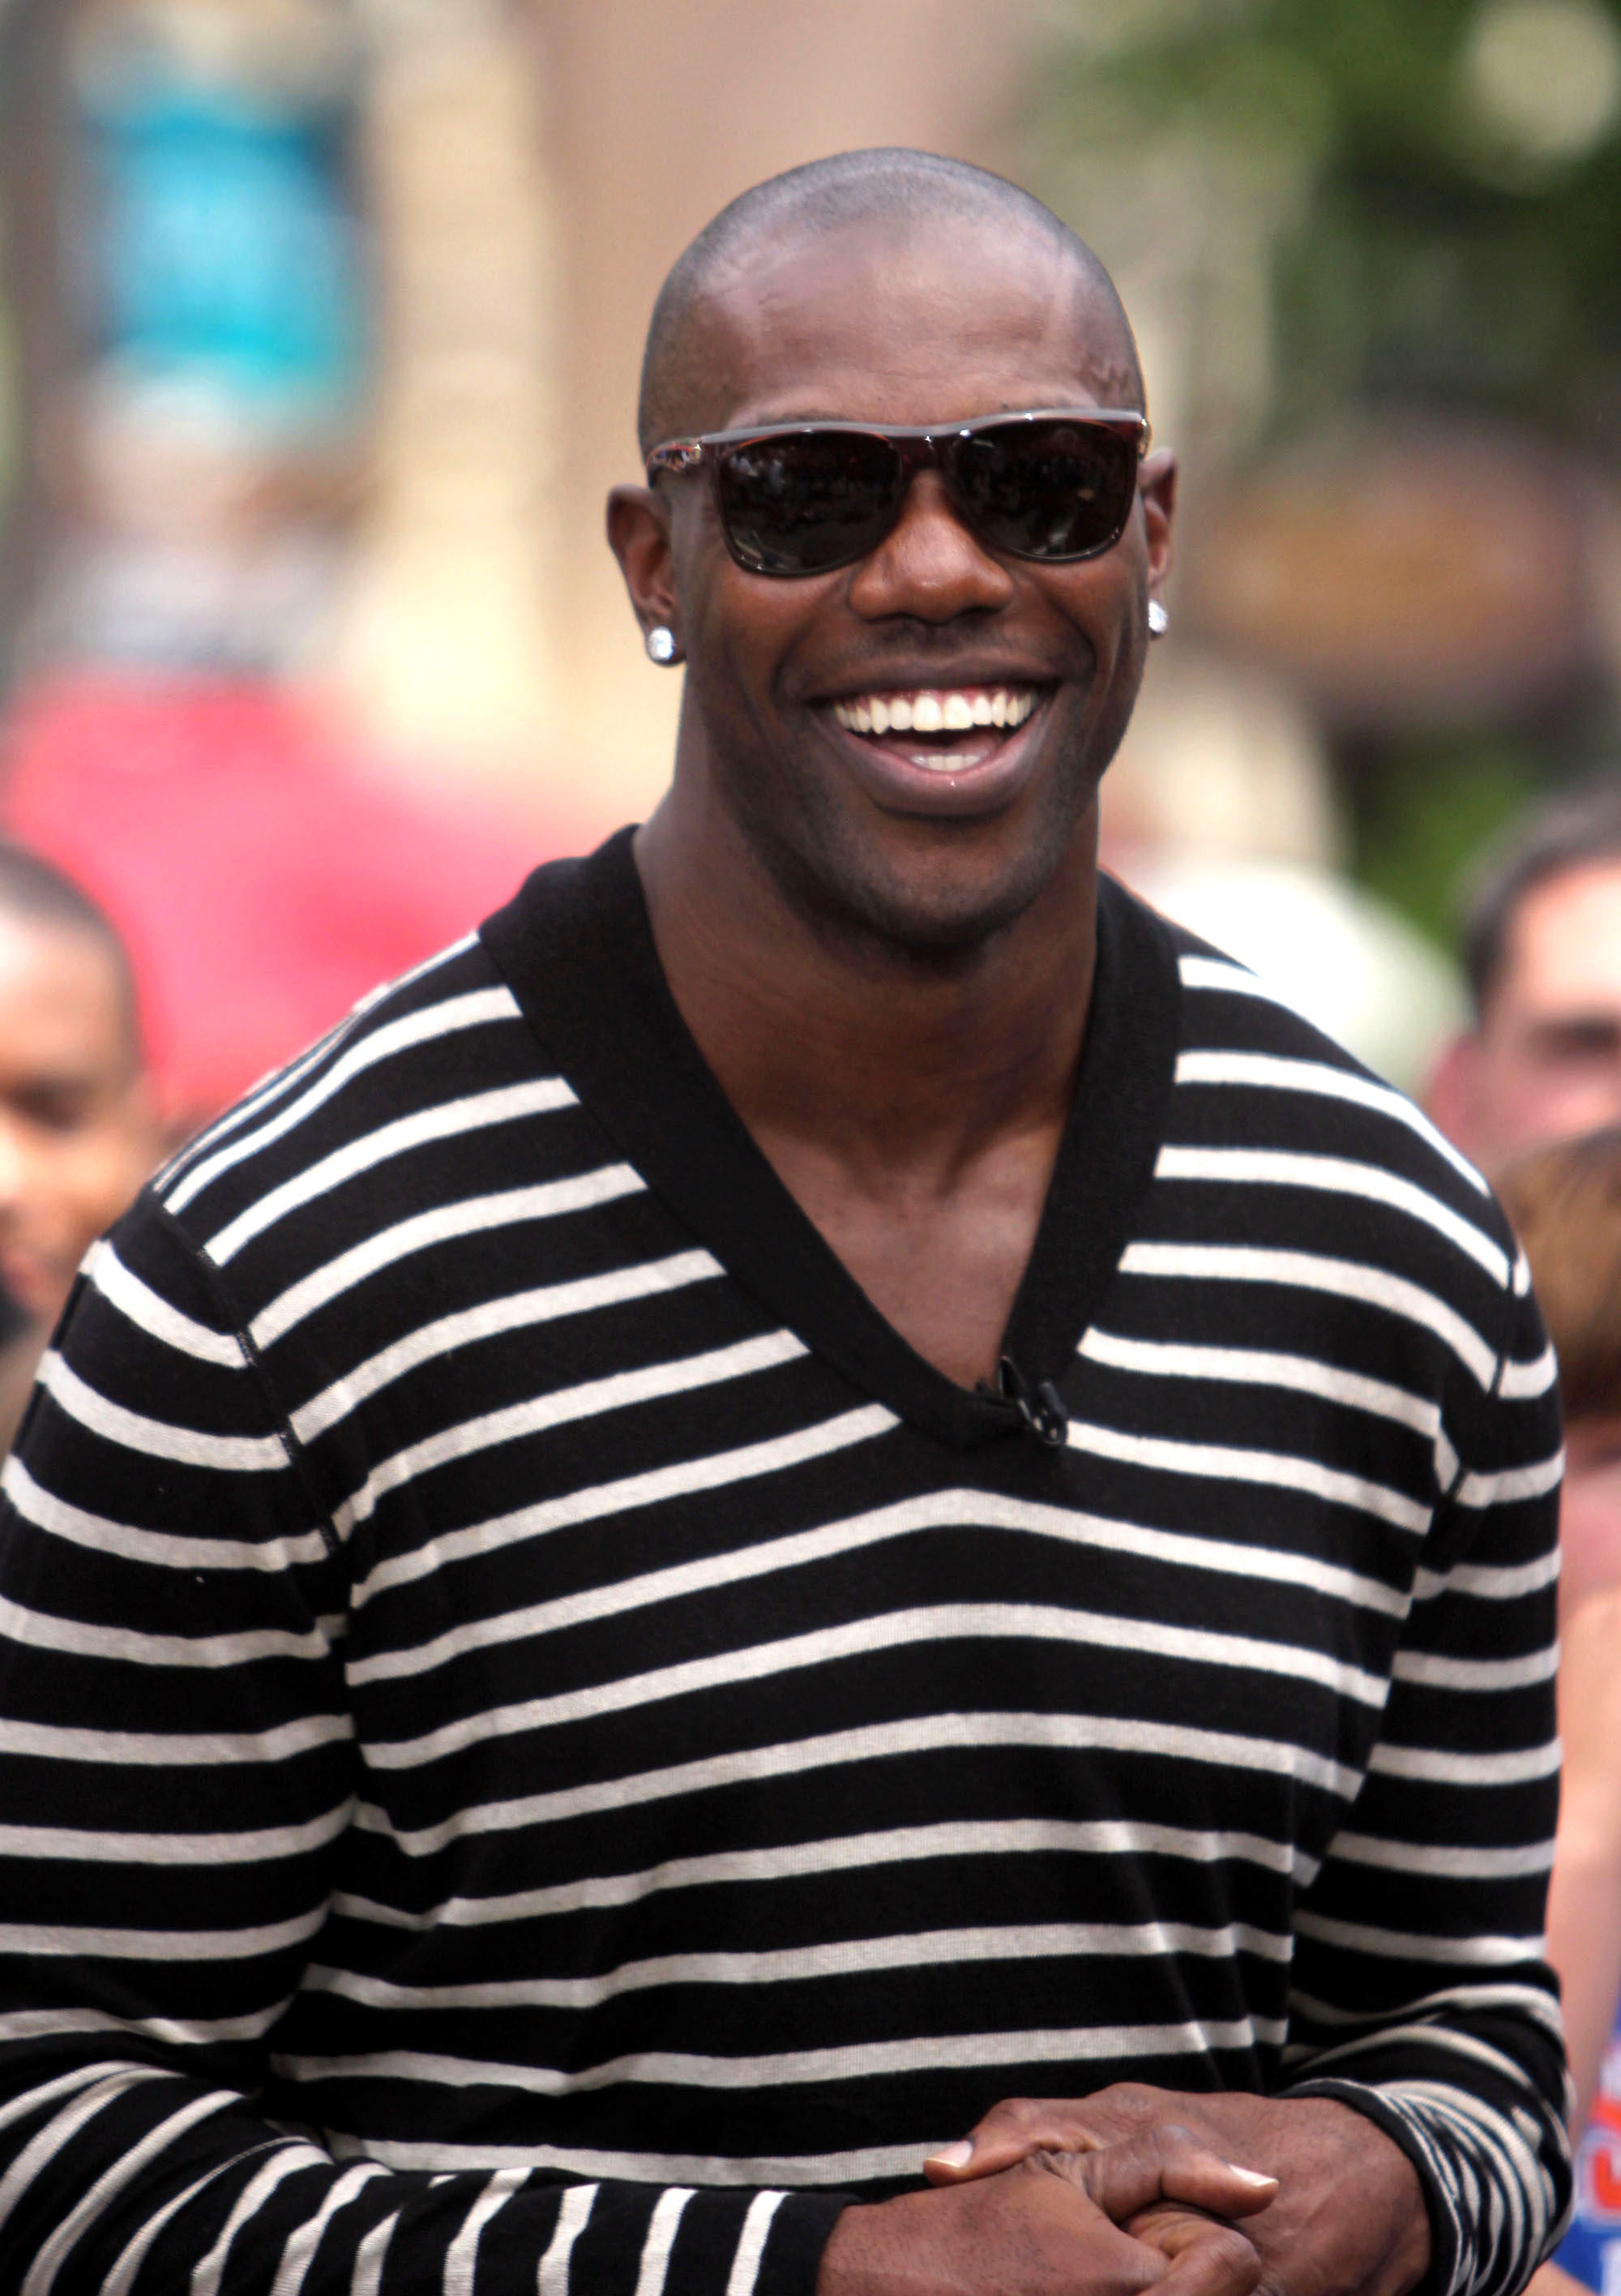 terrell owens Terrell owens, who wasn't present when pro football's 2018 hall of fame class was revealed at super bowl, has selected former coach to be presenter.